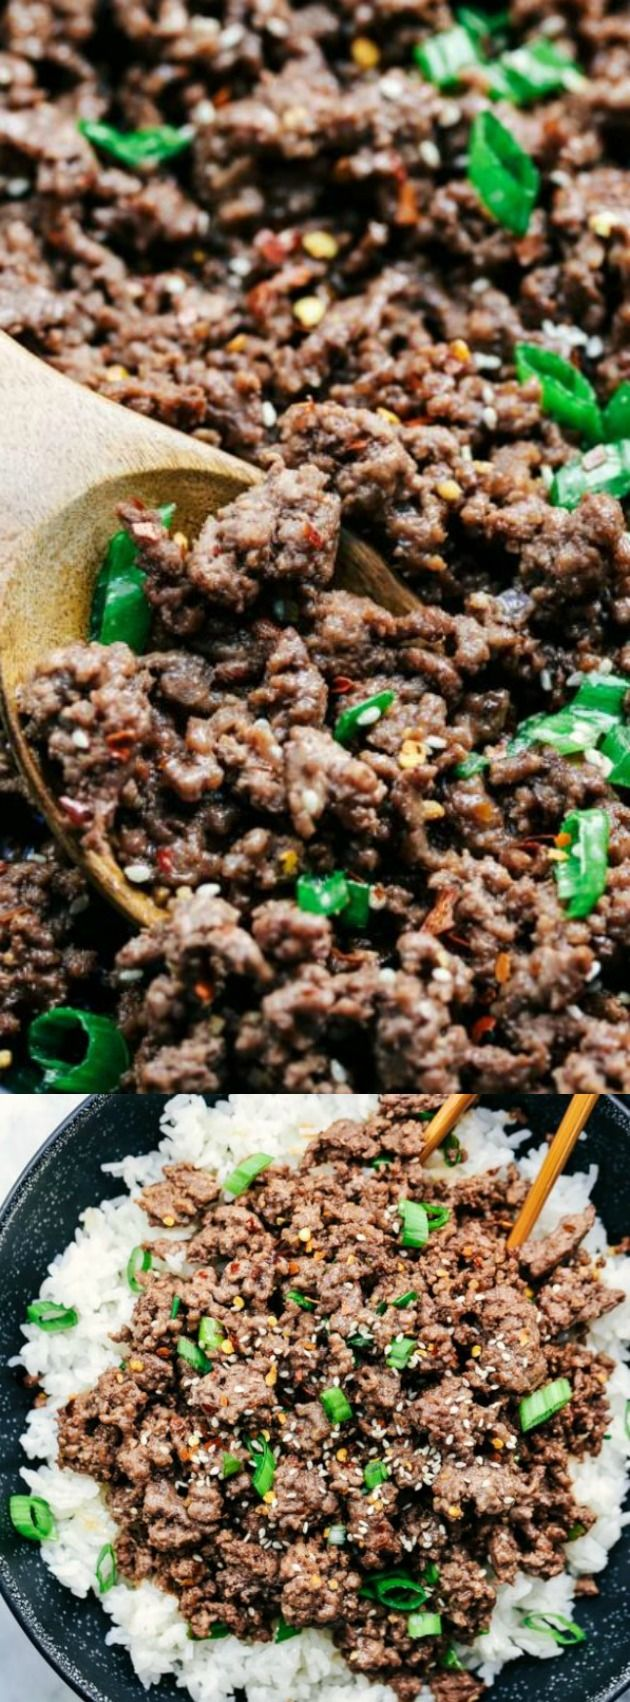 These Korean Ground Beef and Rice Bowls from The Recipe Critic are so incredibly easy to make! Asian flavors like brown sugar, soy sauce, and ginger take the beef to the next level!